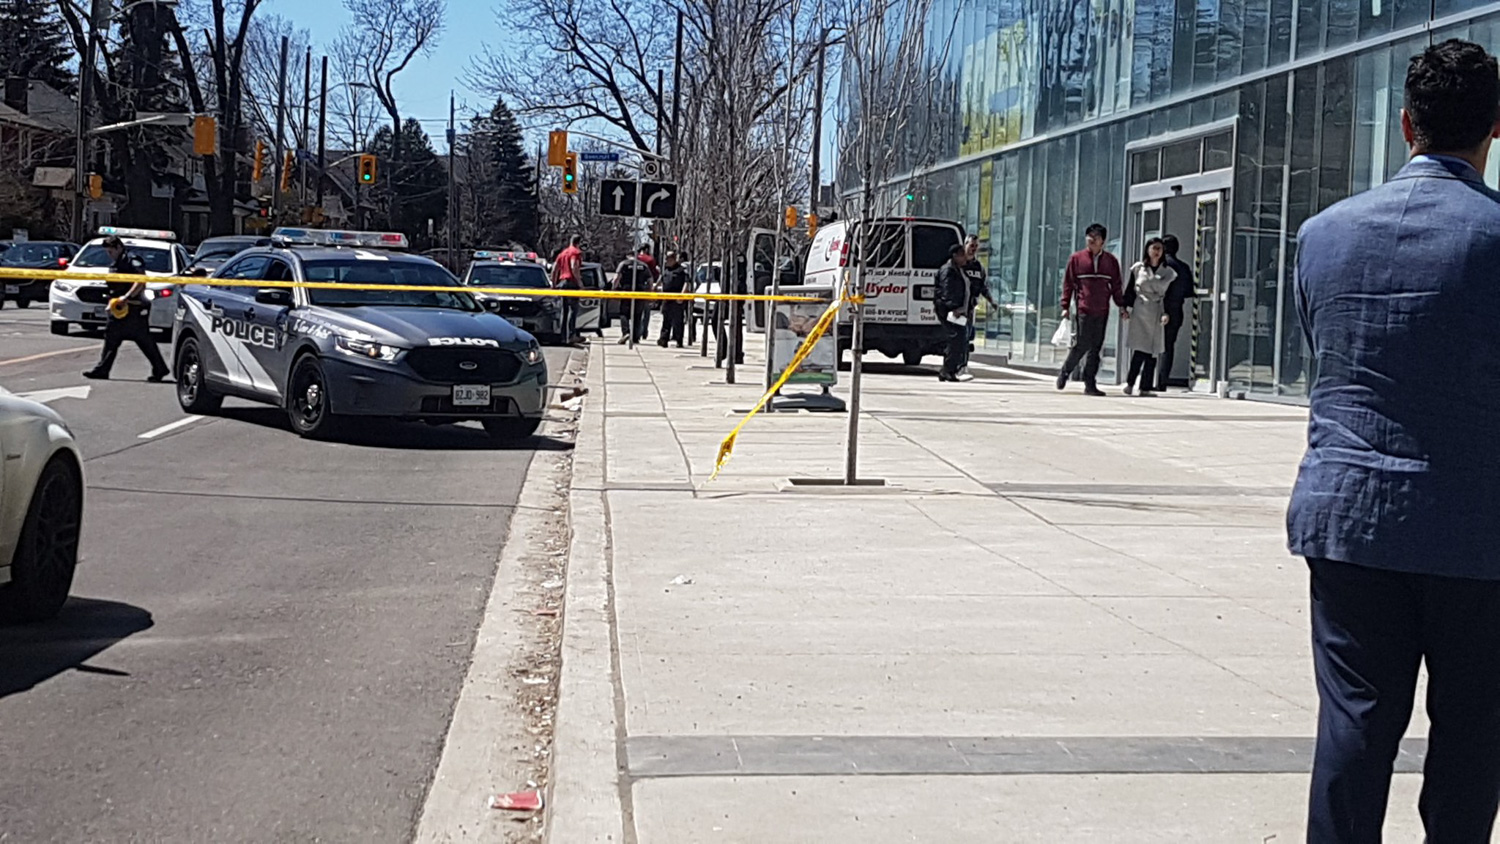 <div class='meta'><div class='origin-logo' data-origin='none'></div><span class='caption-text' data-credit='SophflyPro/Twitter'>A white van hit pedestrians in Toronto, Canada, killing 9 people and injuring 16 more.</span></div>